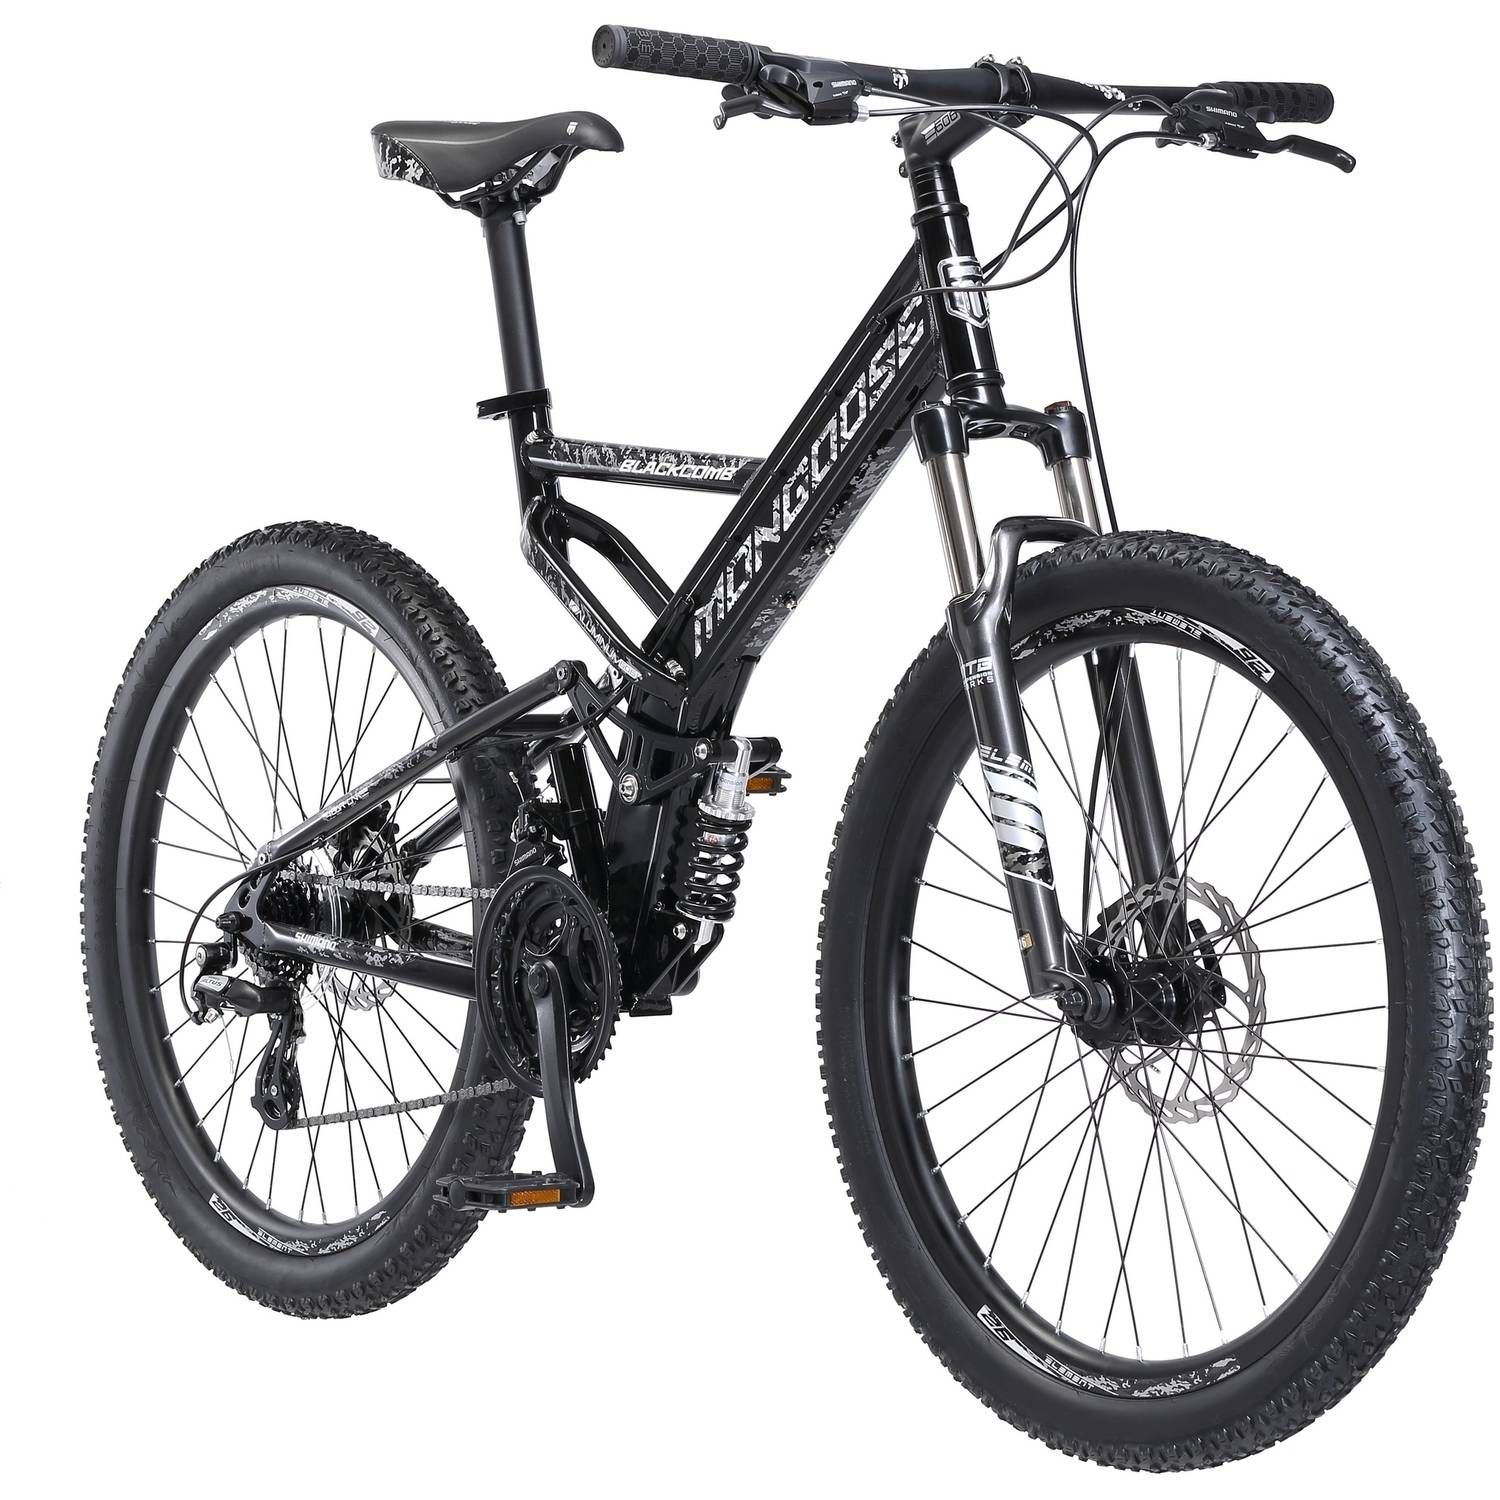 Bicycle And Bikes Bikes For Sale Used Bicycles For Sale Bikes For